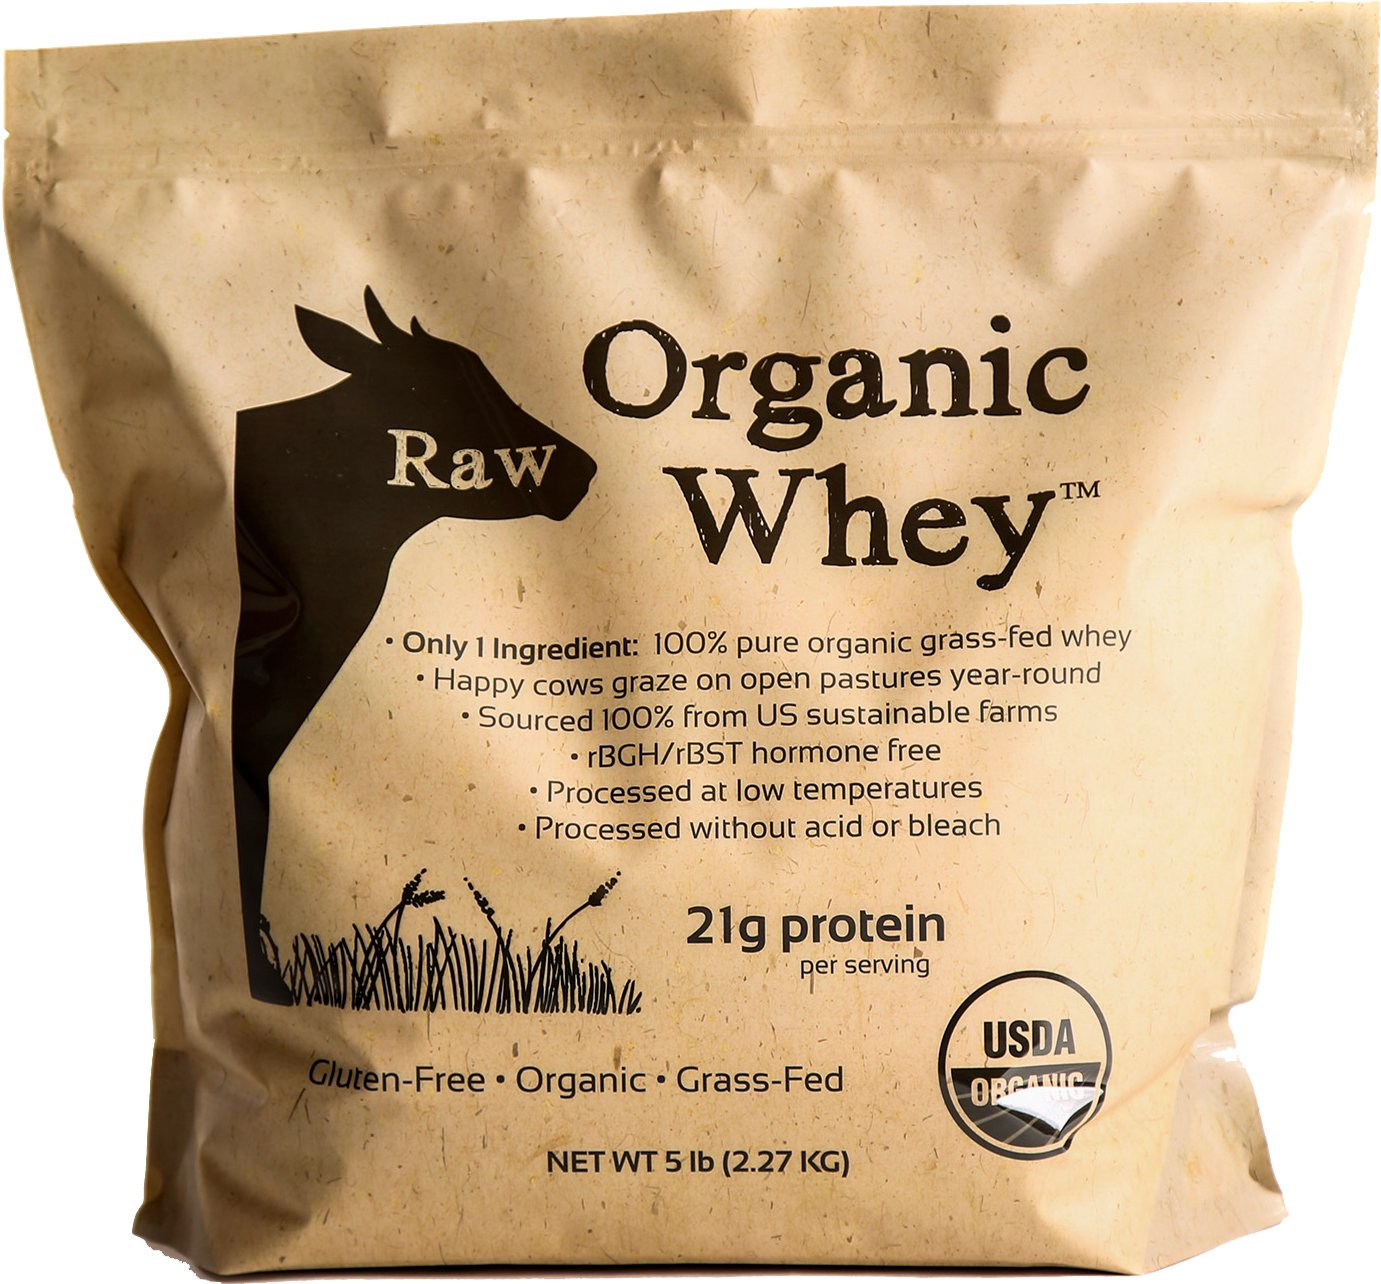 Raw Organic Whey 5LB - USDA Certified Organic Whey Protein Powder, Happy Healthy Cows, COLD PROCESSED Undenatured 100% Grass Fed + NON-GMO + rBGH Free + Gluten Free, Unflavored, Unsweetened(5 LB BULK) by Raw Organic Whey (Image #1)